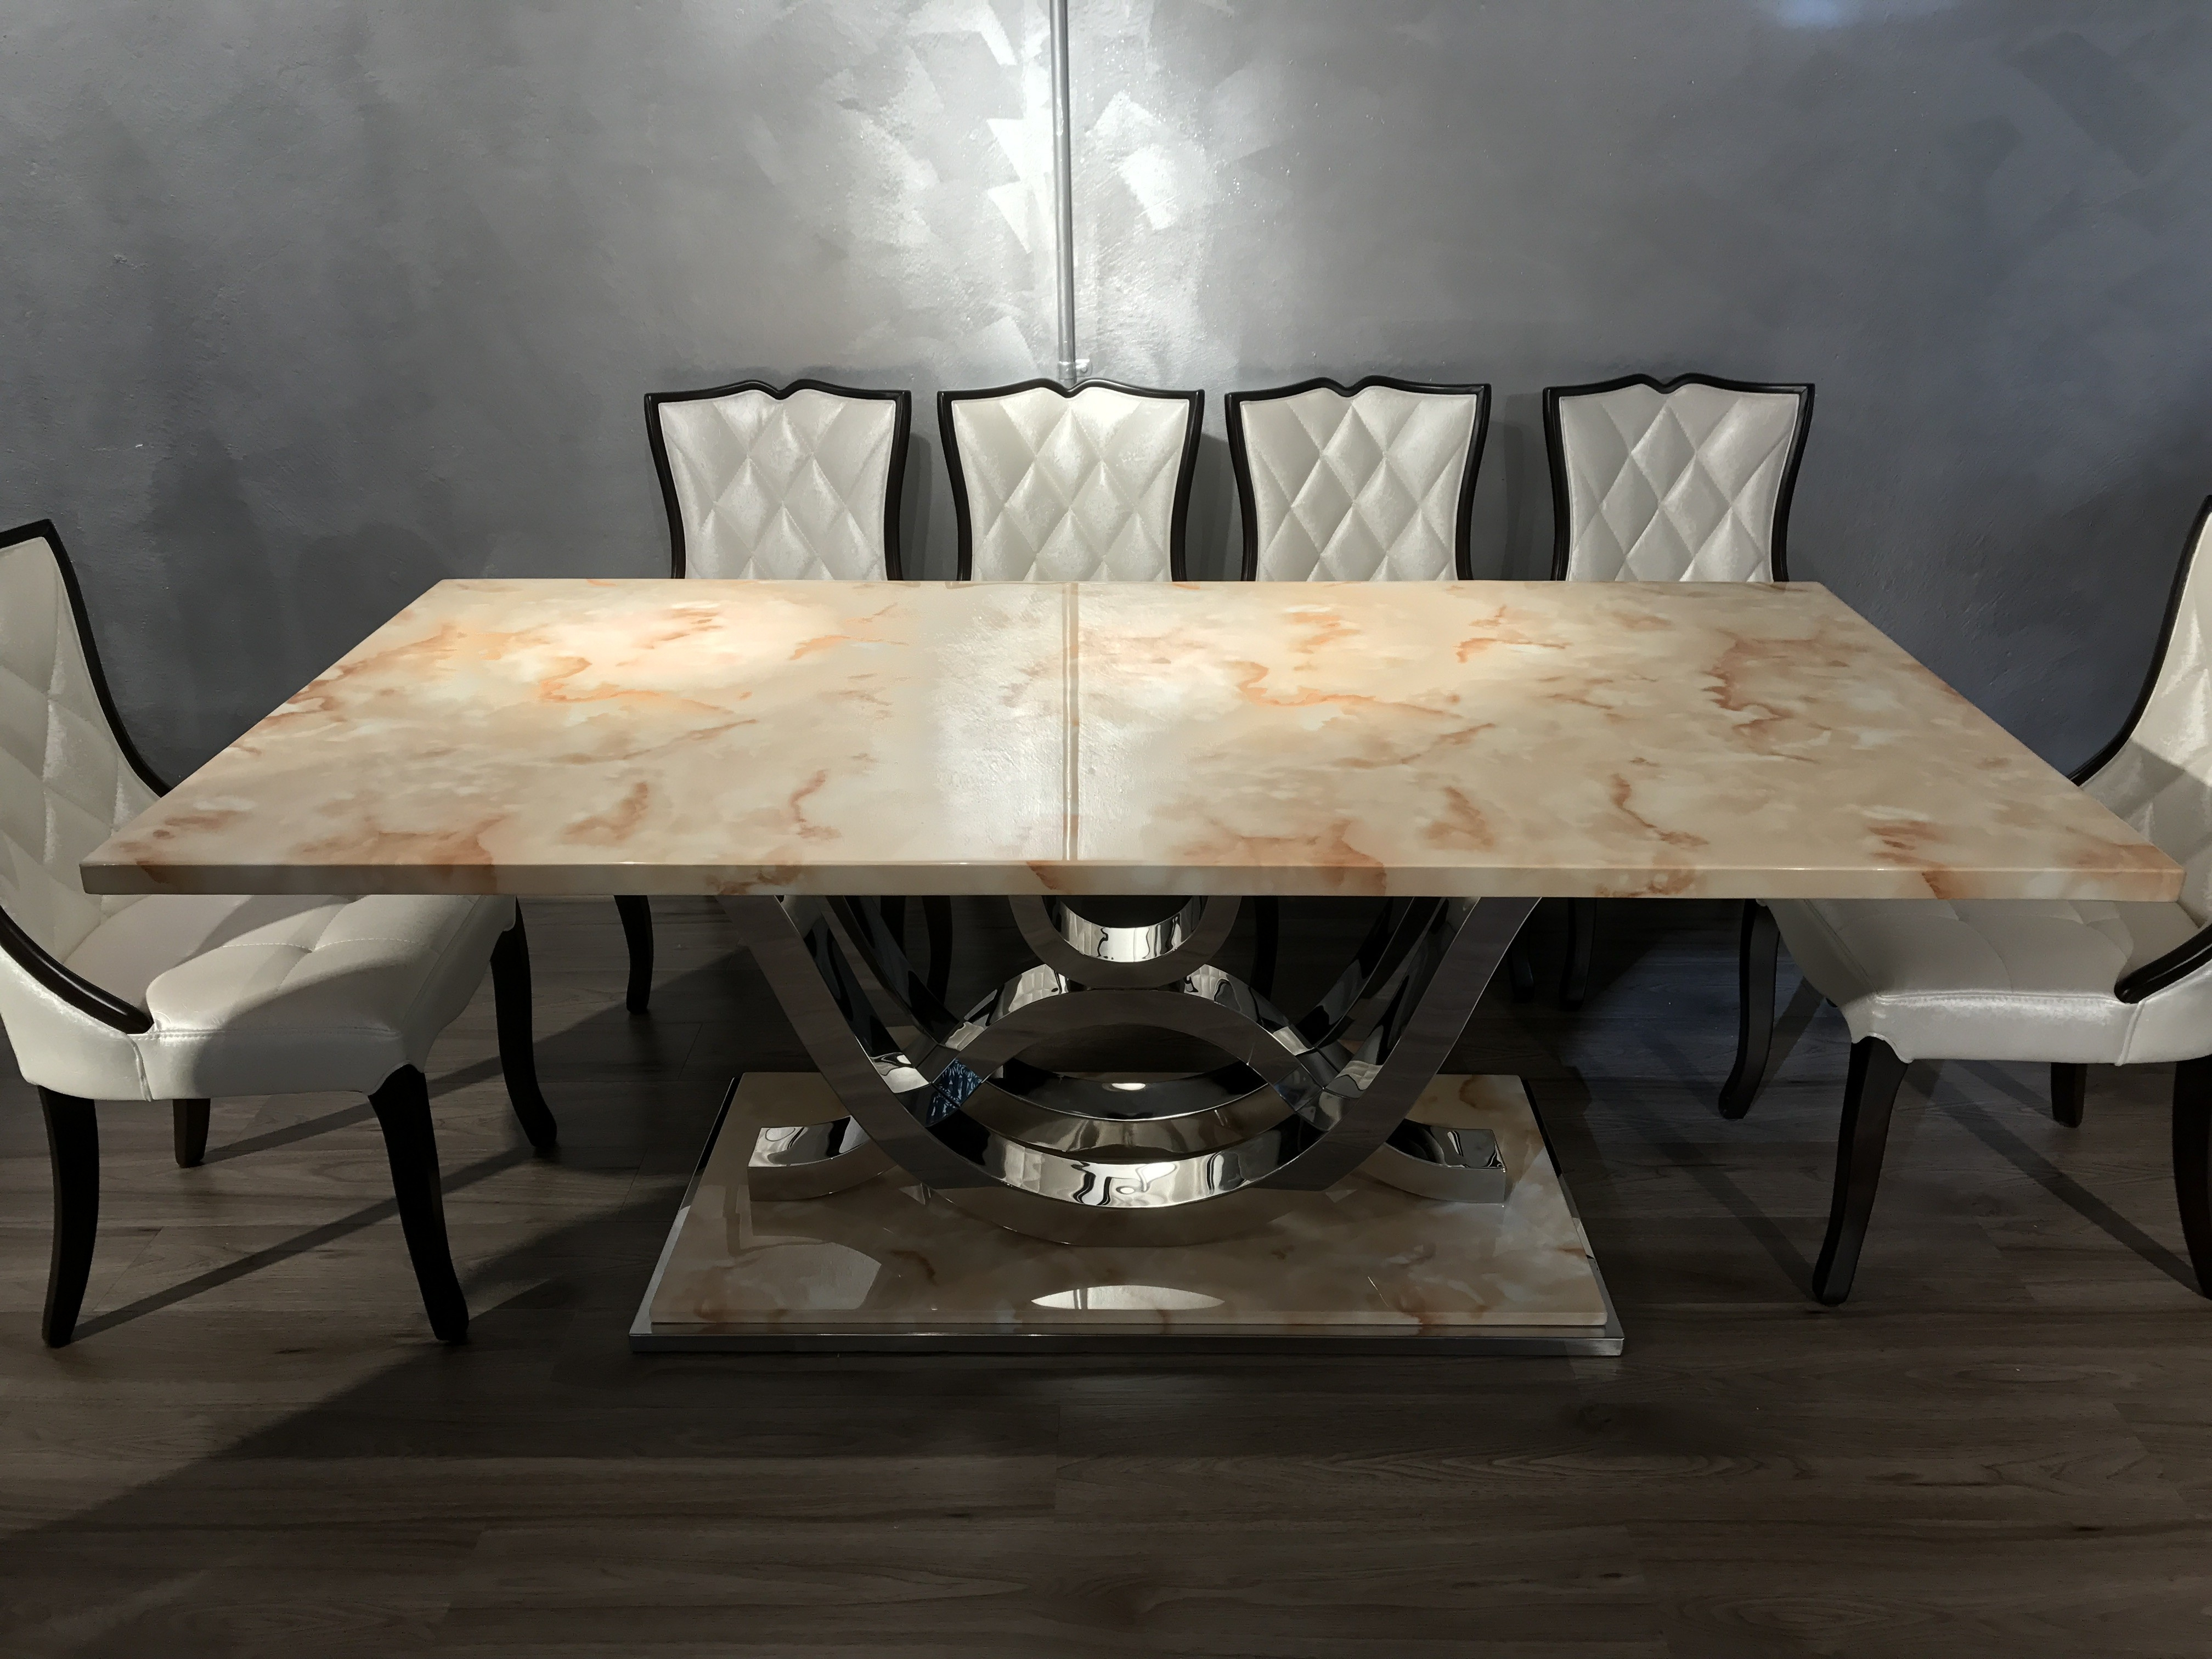 Marbella Dining Tables With Regard To Newest Marbella Marble Dining Table – Tables – Living Room (View 8 of 25)